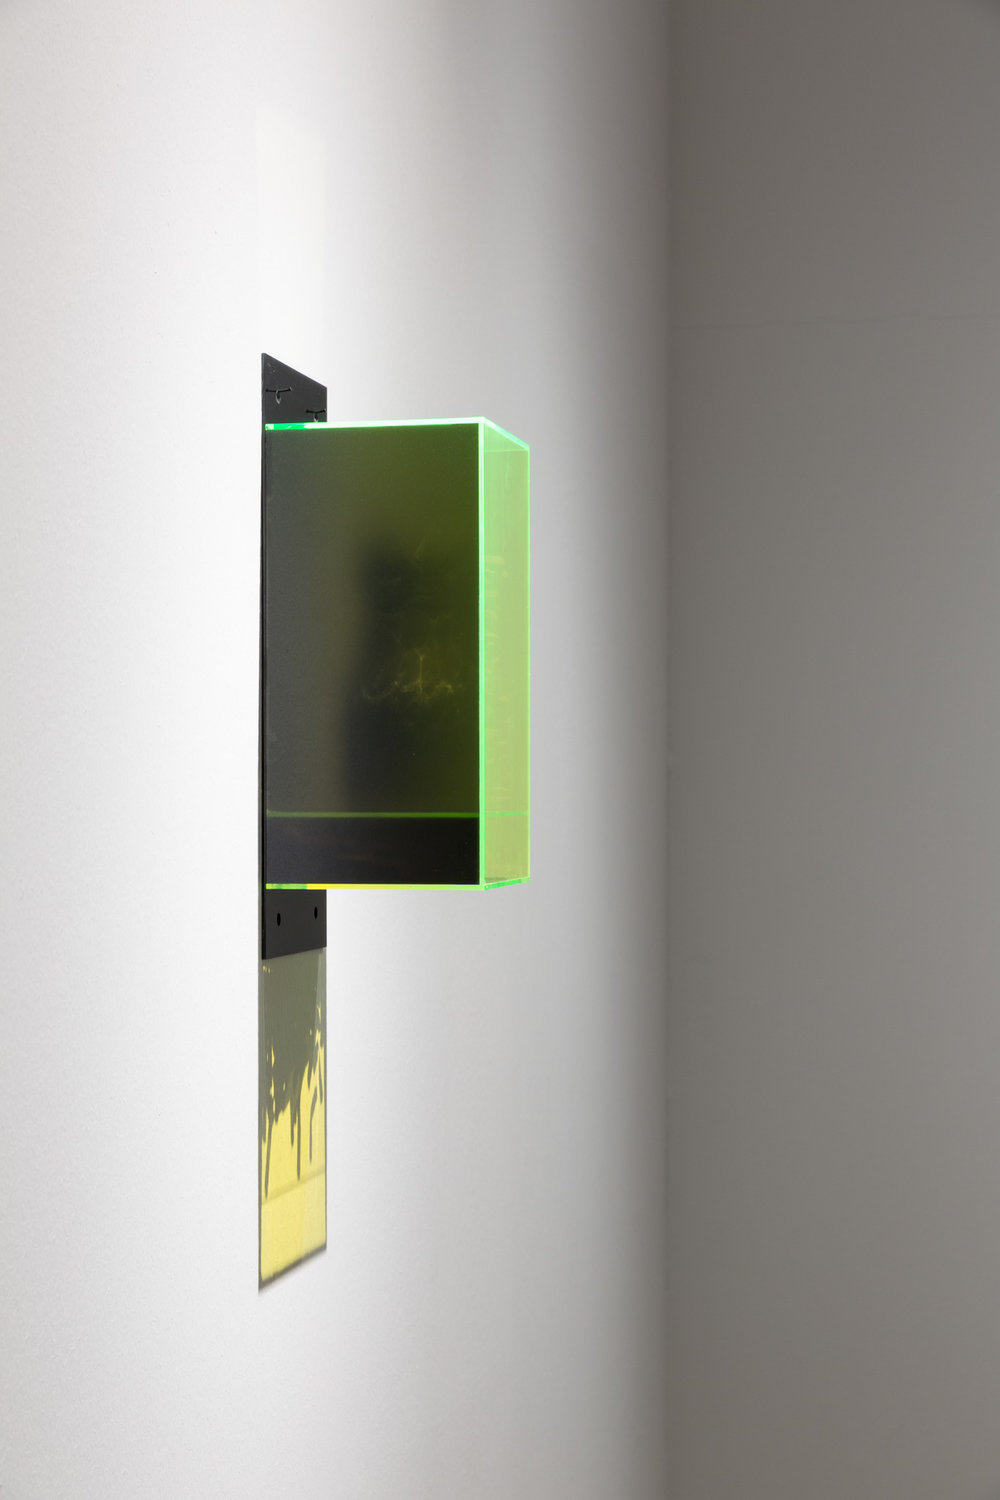 Oral (Mangomilch und süßer Rauch) , 2013  colored plexiglass, cigarette ends, tape, paper cup, glass, mold  40 × 15 × 15 cm